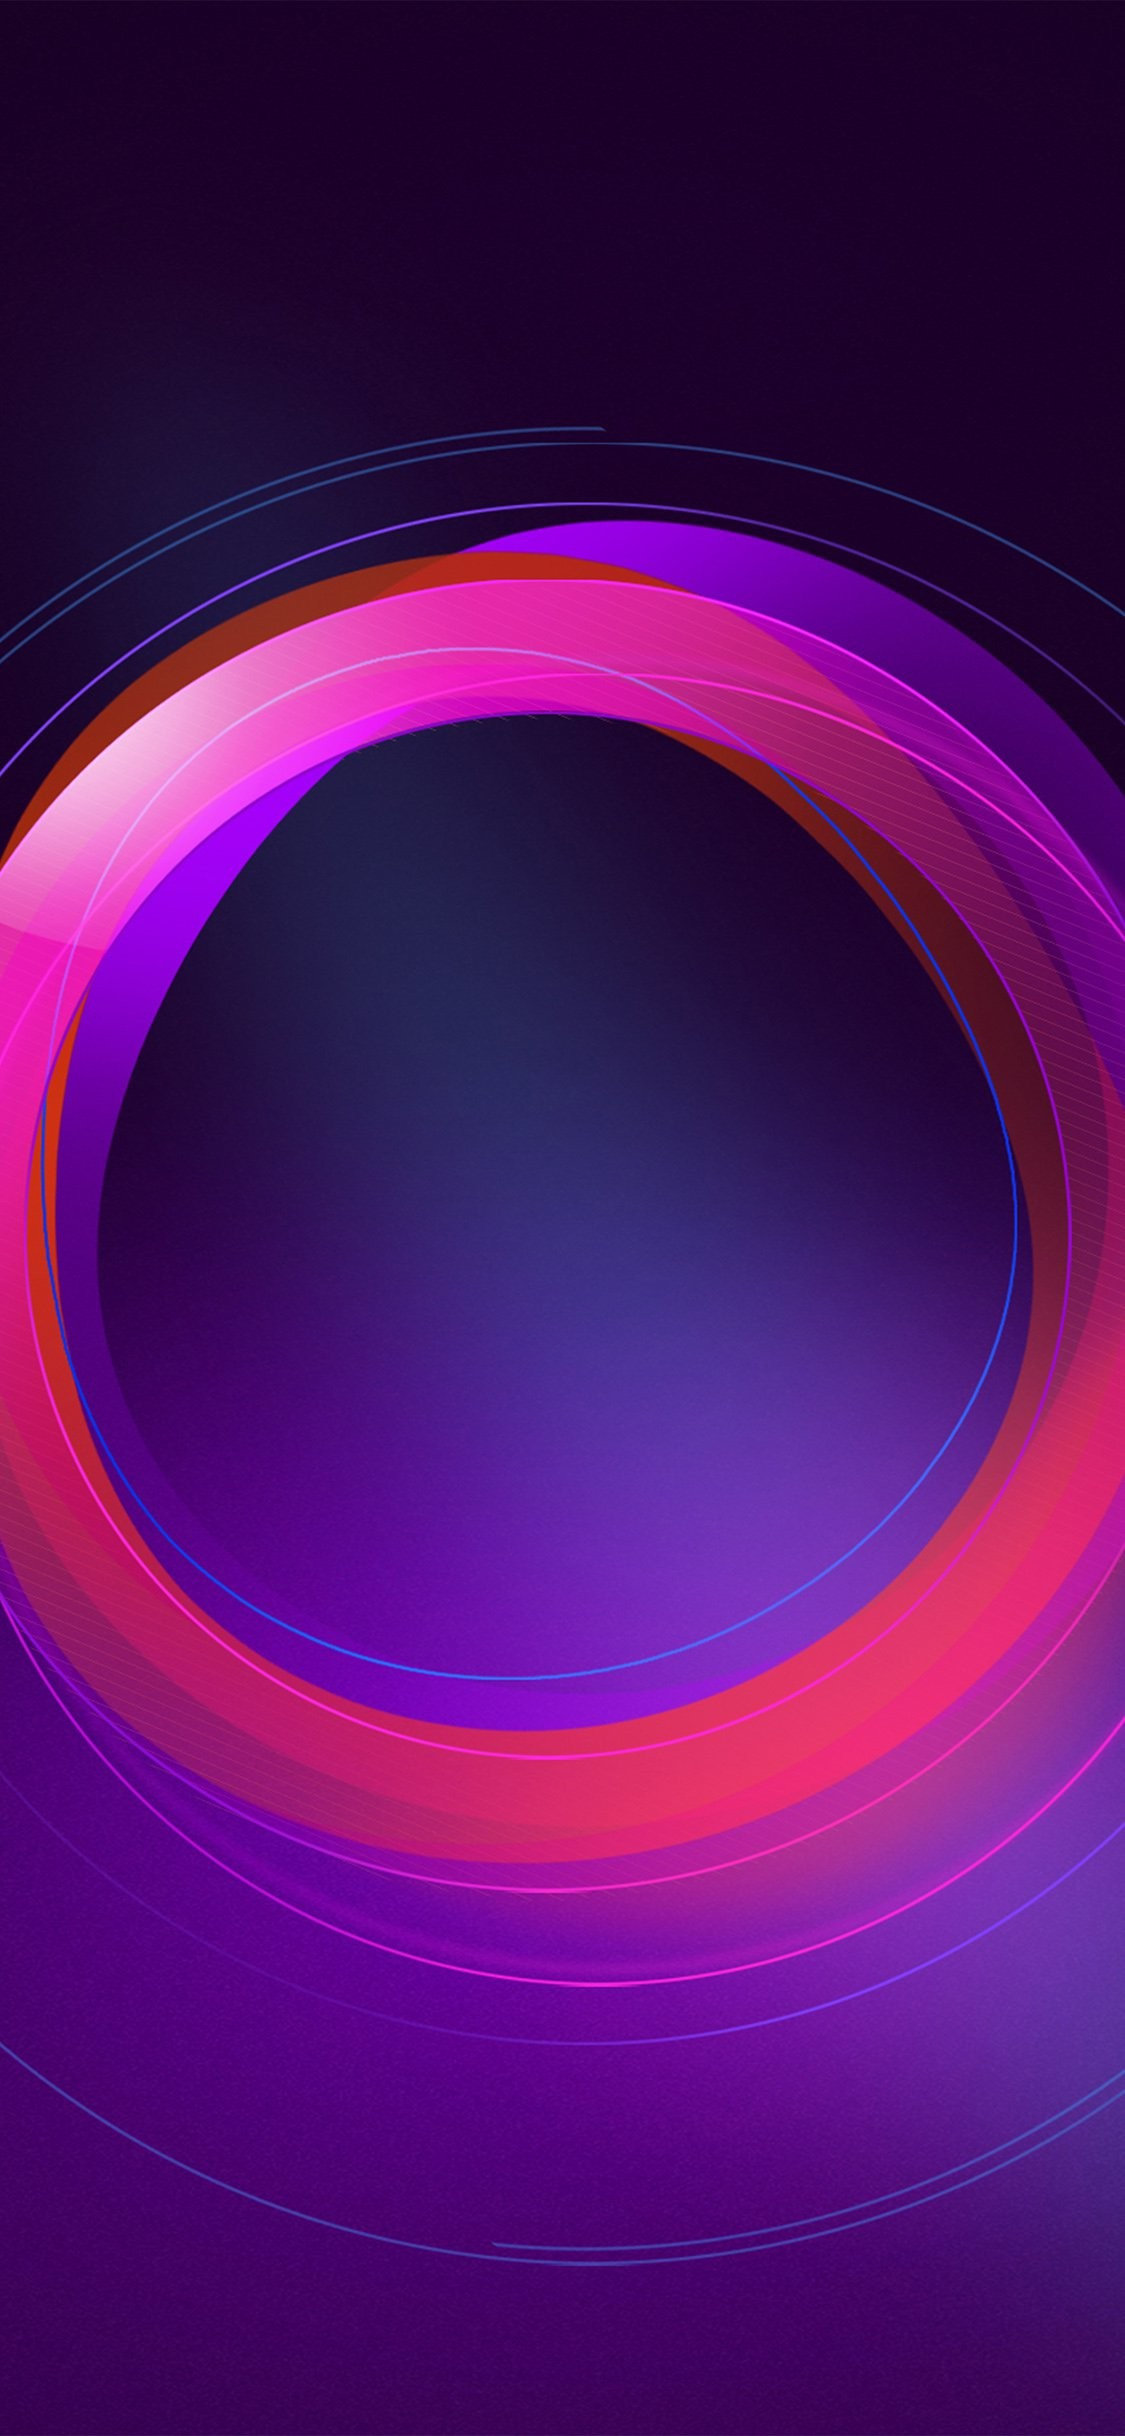 1125x2436 iPhoneXpapers.com | iPhone X wallpaper | vw26-circle-abstract-purple -pattern-background